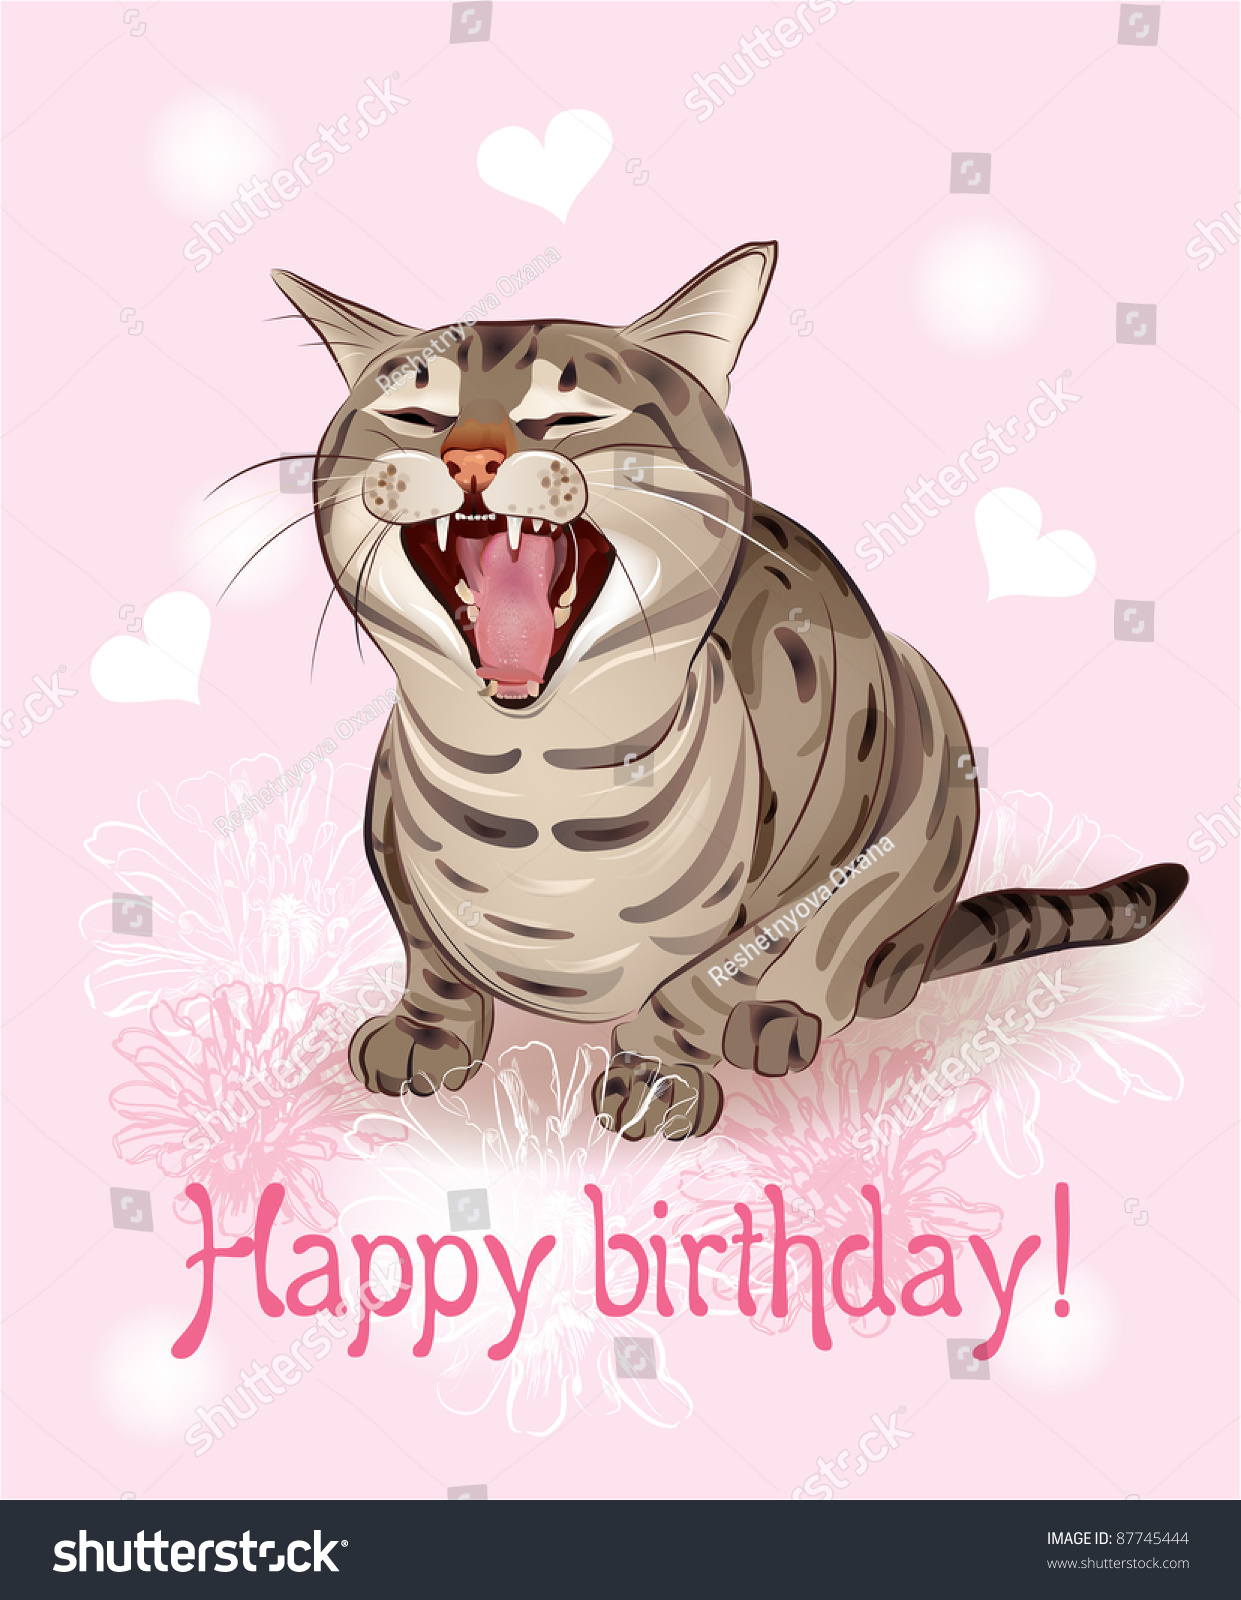 happy birthday card funny cat sings stock illustration, Birthday card